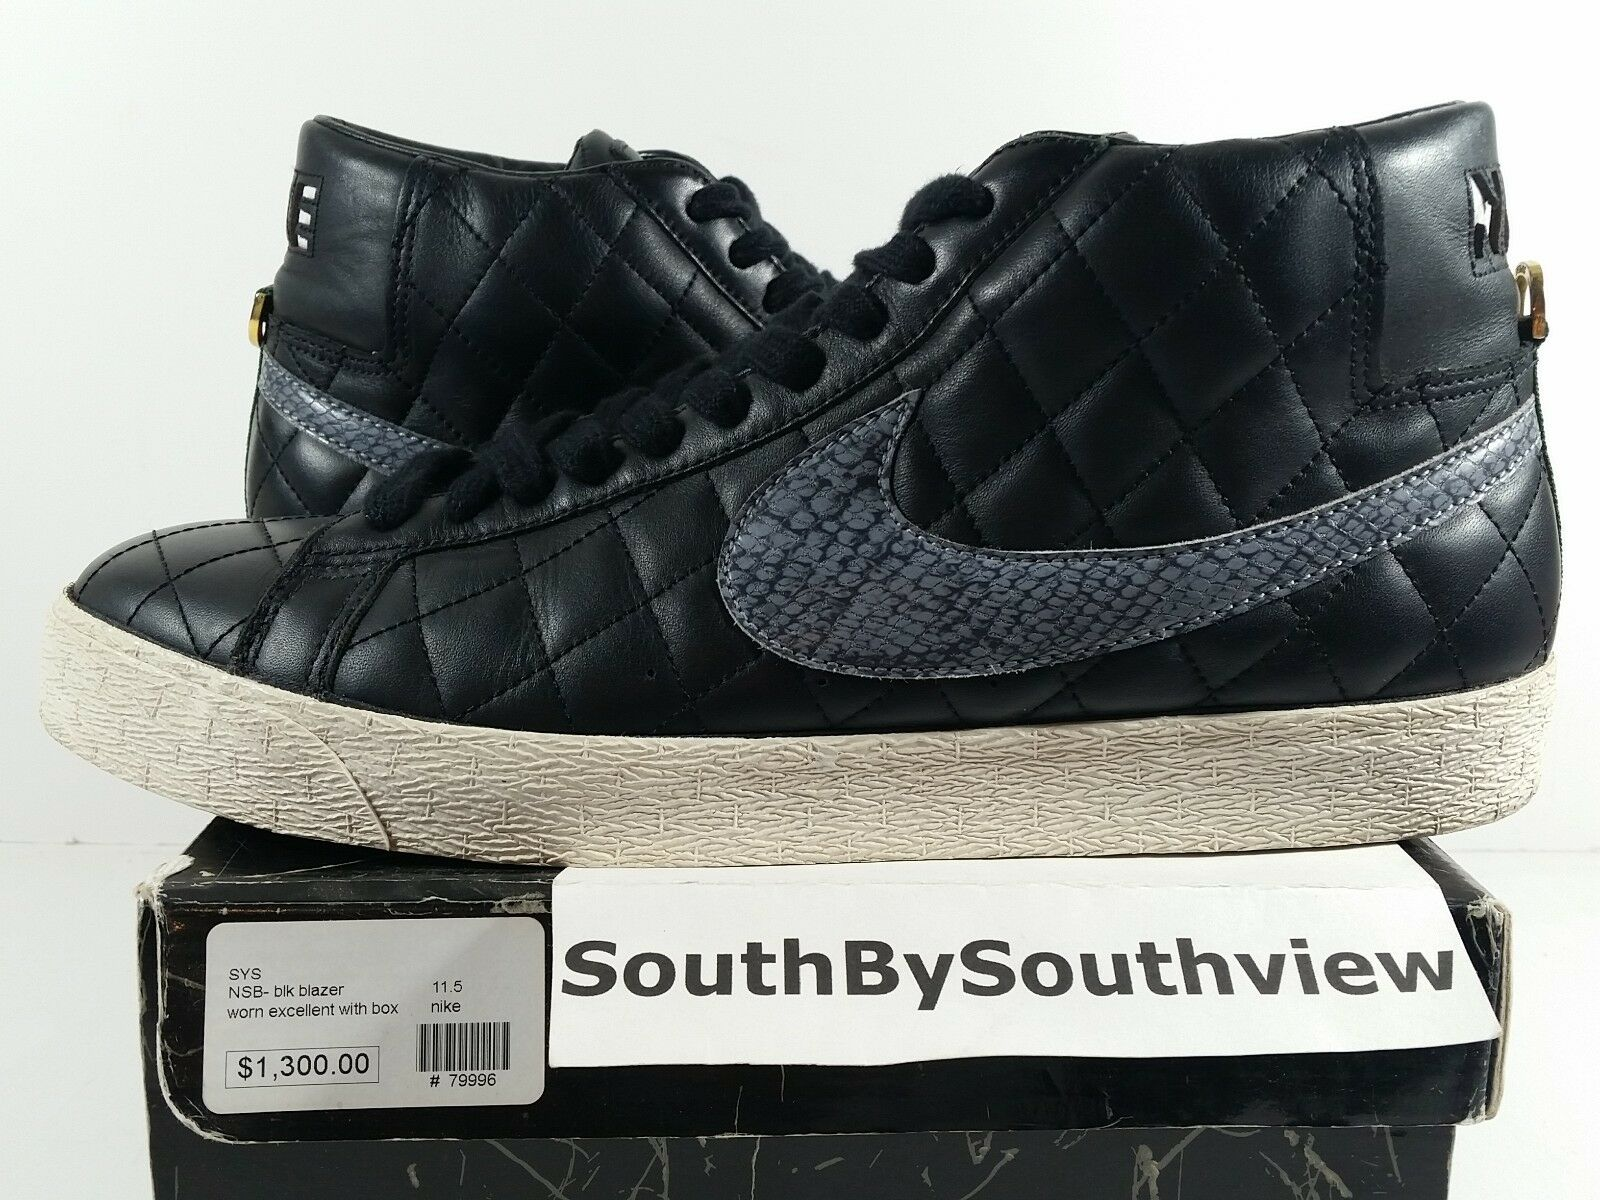 Nike SB Blazer Supreme Black Size 11.5 Worn Excellent New York Red 313962-001